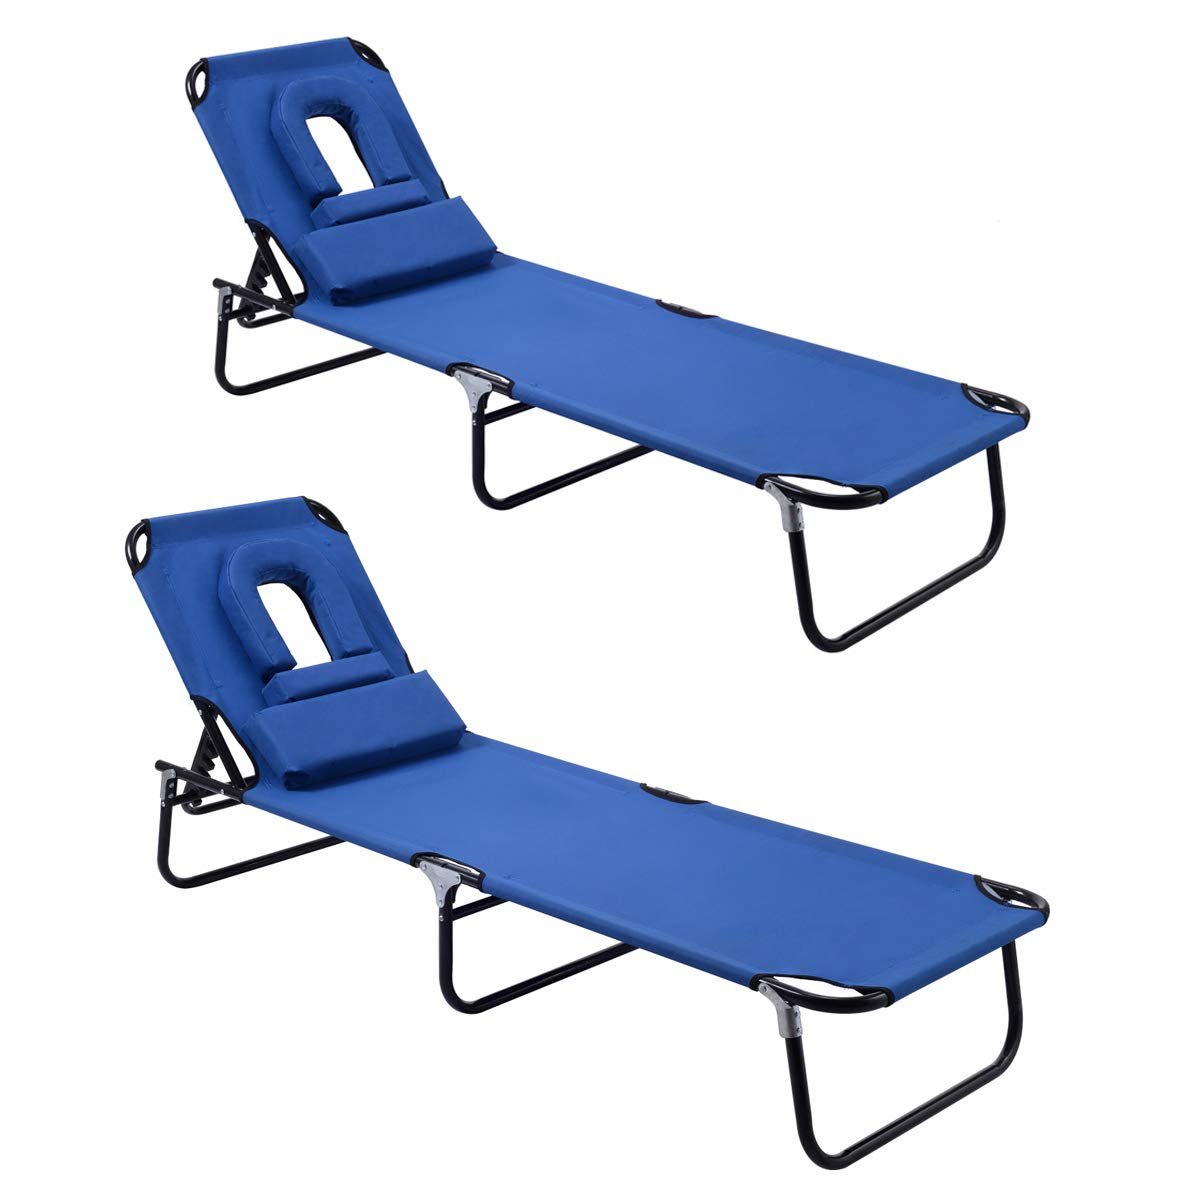 Goplus Folding Chaise Lounge Chair, Adjustable Back Outdoor Beach Pool w/Tanning Face Down Hole (Blue 2 Pieces) by Goplus